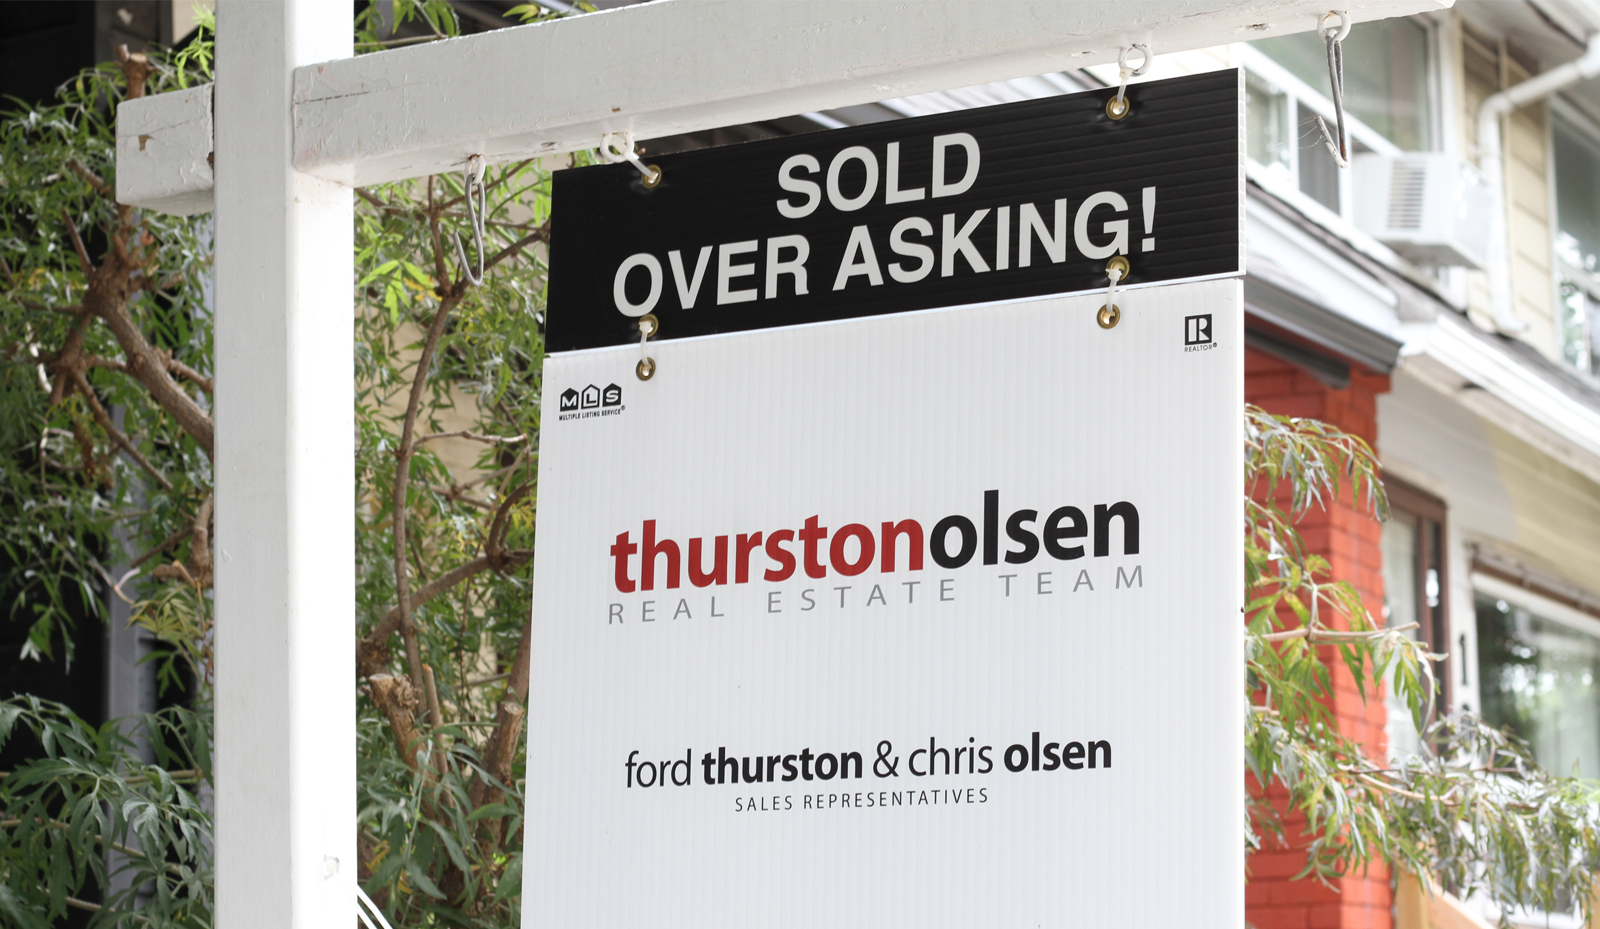 White wooden sign post with text: SOLD OVER ASKING! Thurston Olsen Real Estate Team Ford Thurston and Chris Olsen, Sales Representatives. Who pays your real estate agent?